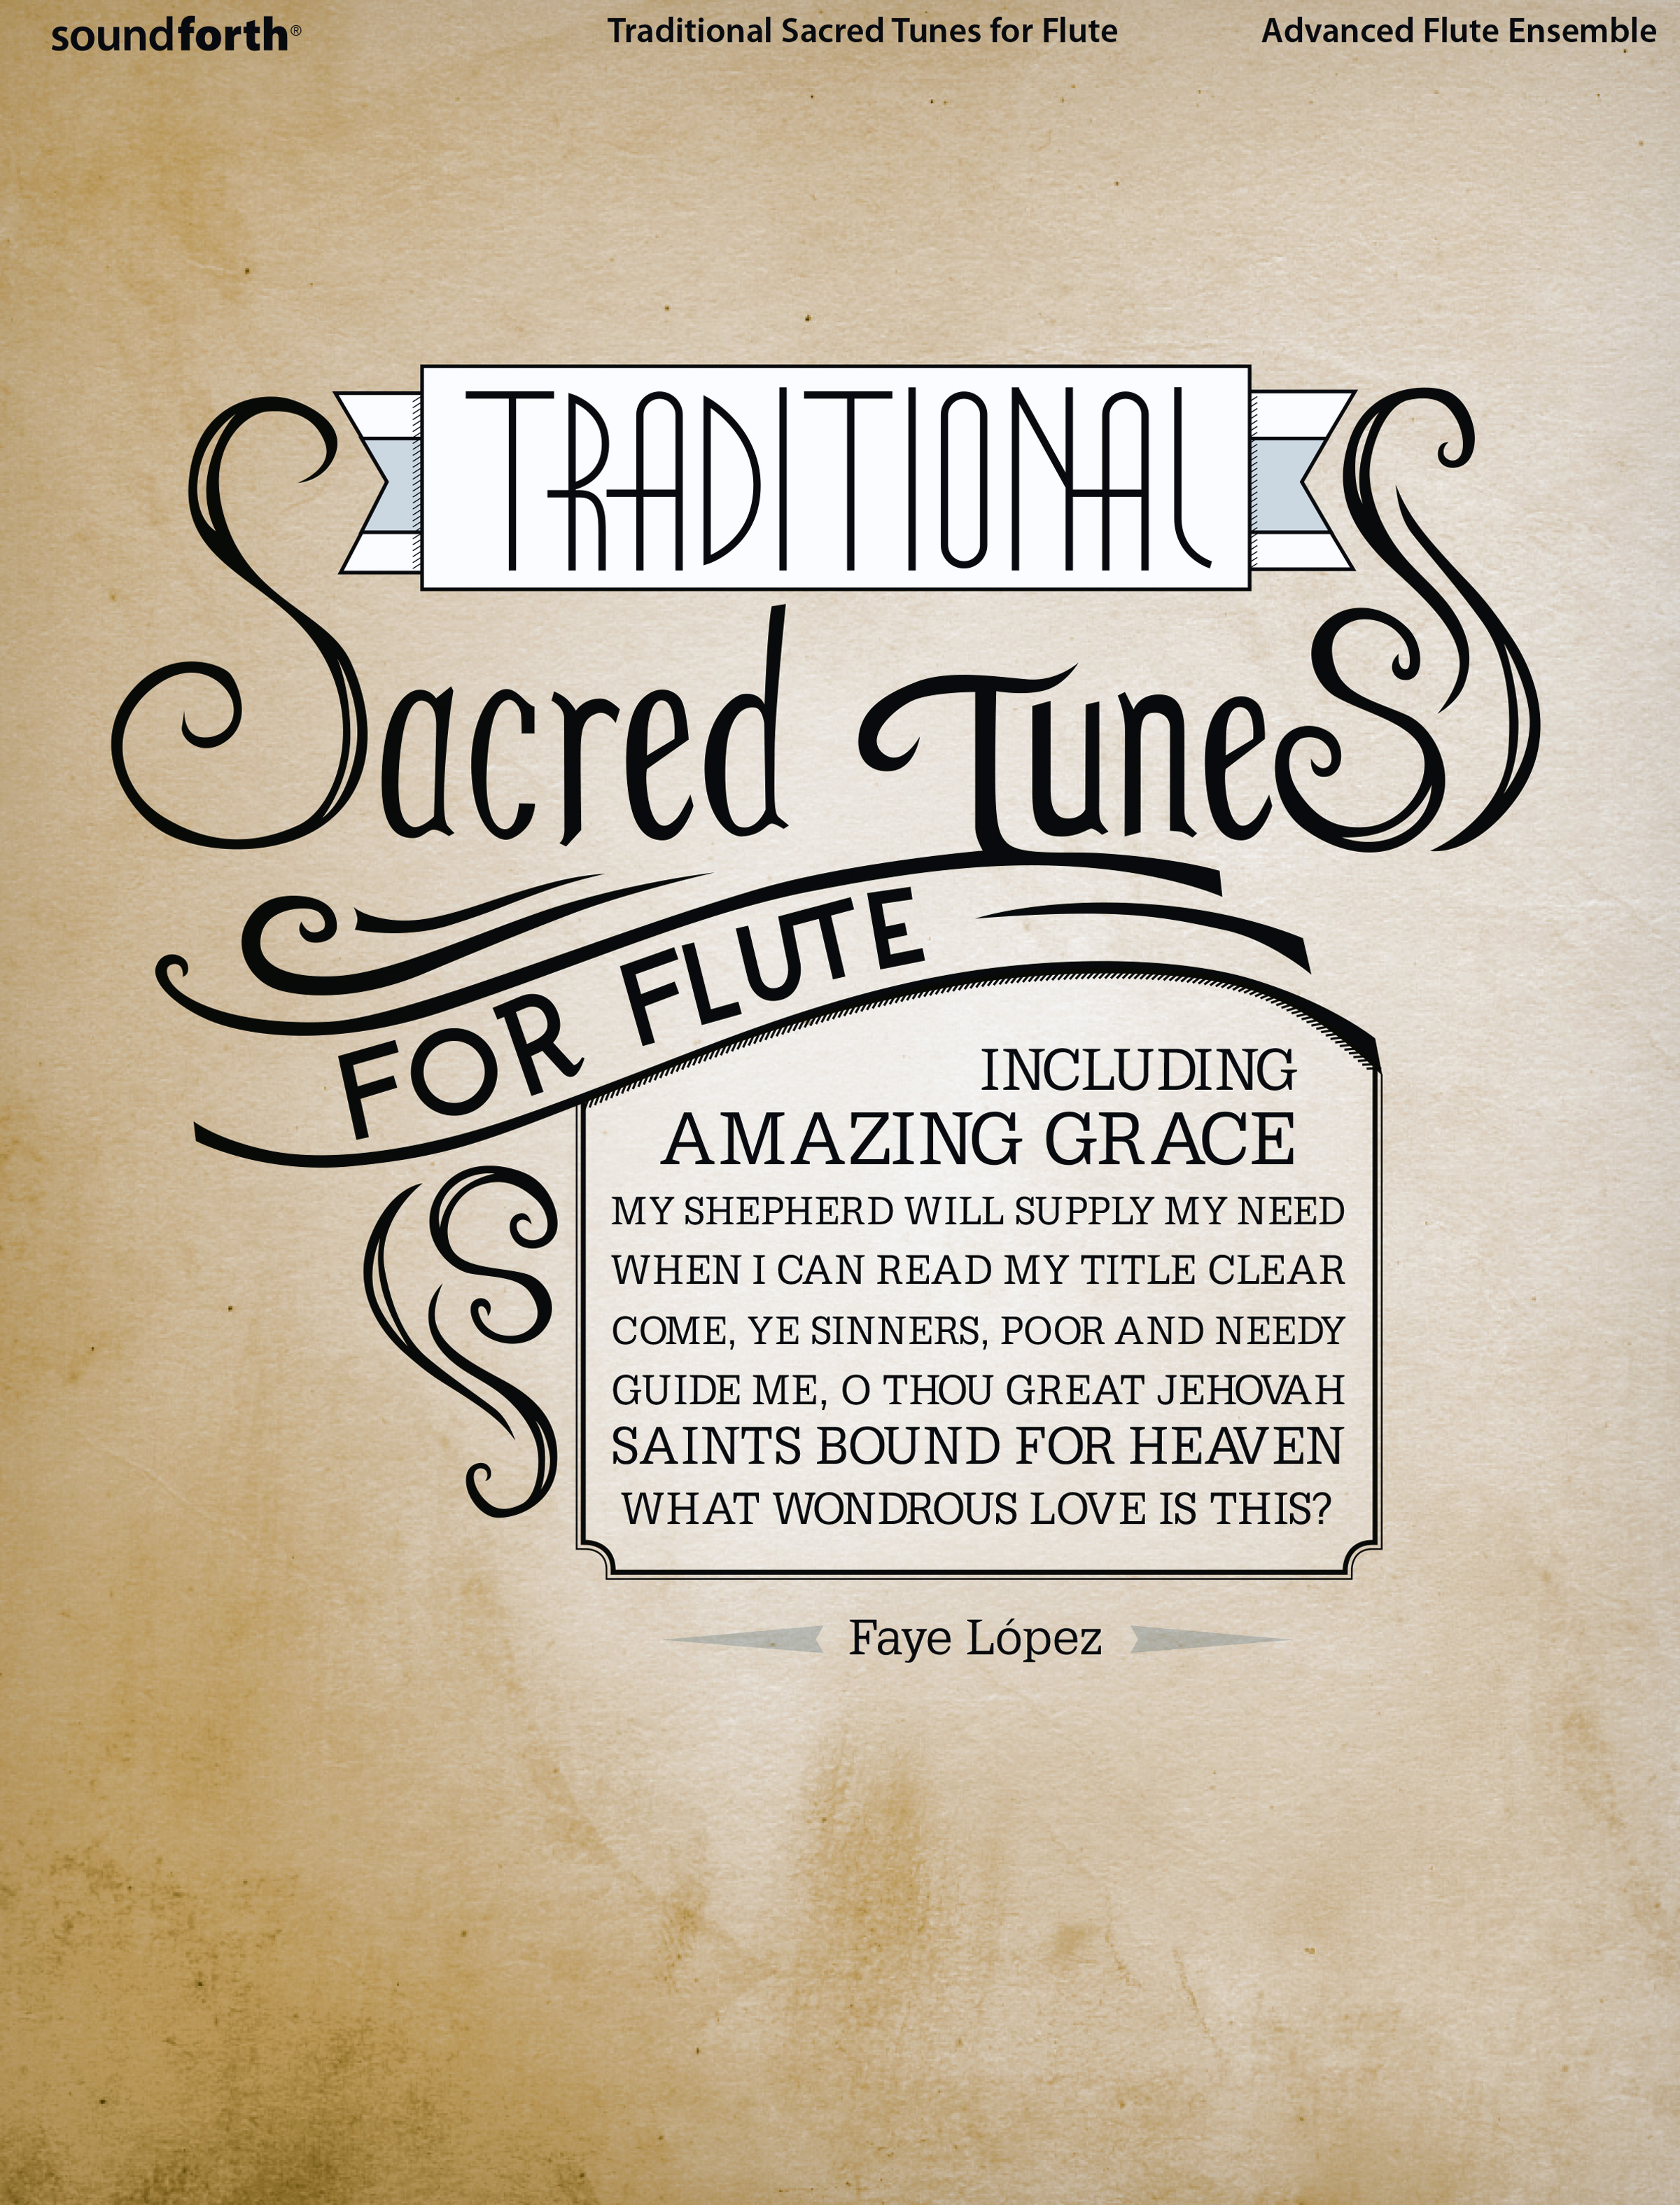 Traditional Sacred Tunes for Flute Ensemble